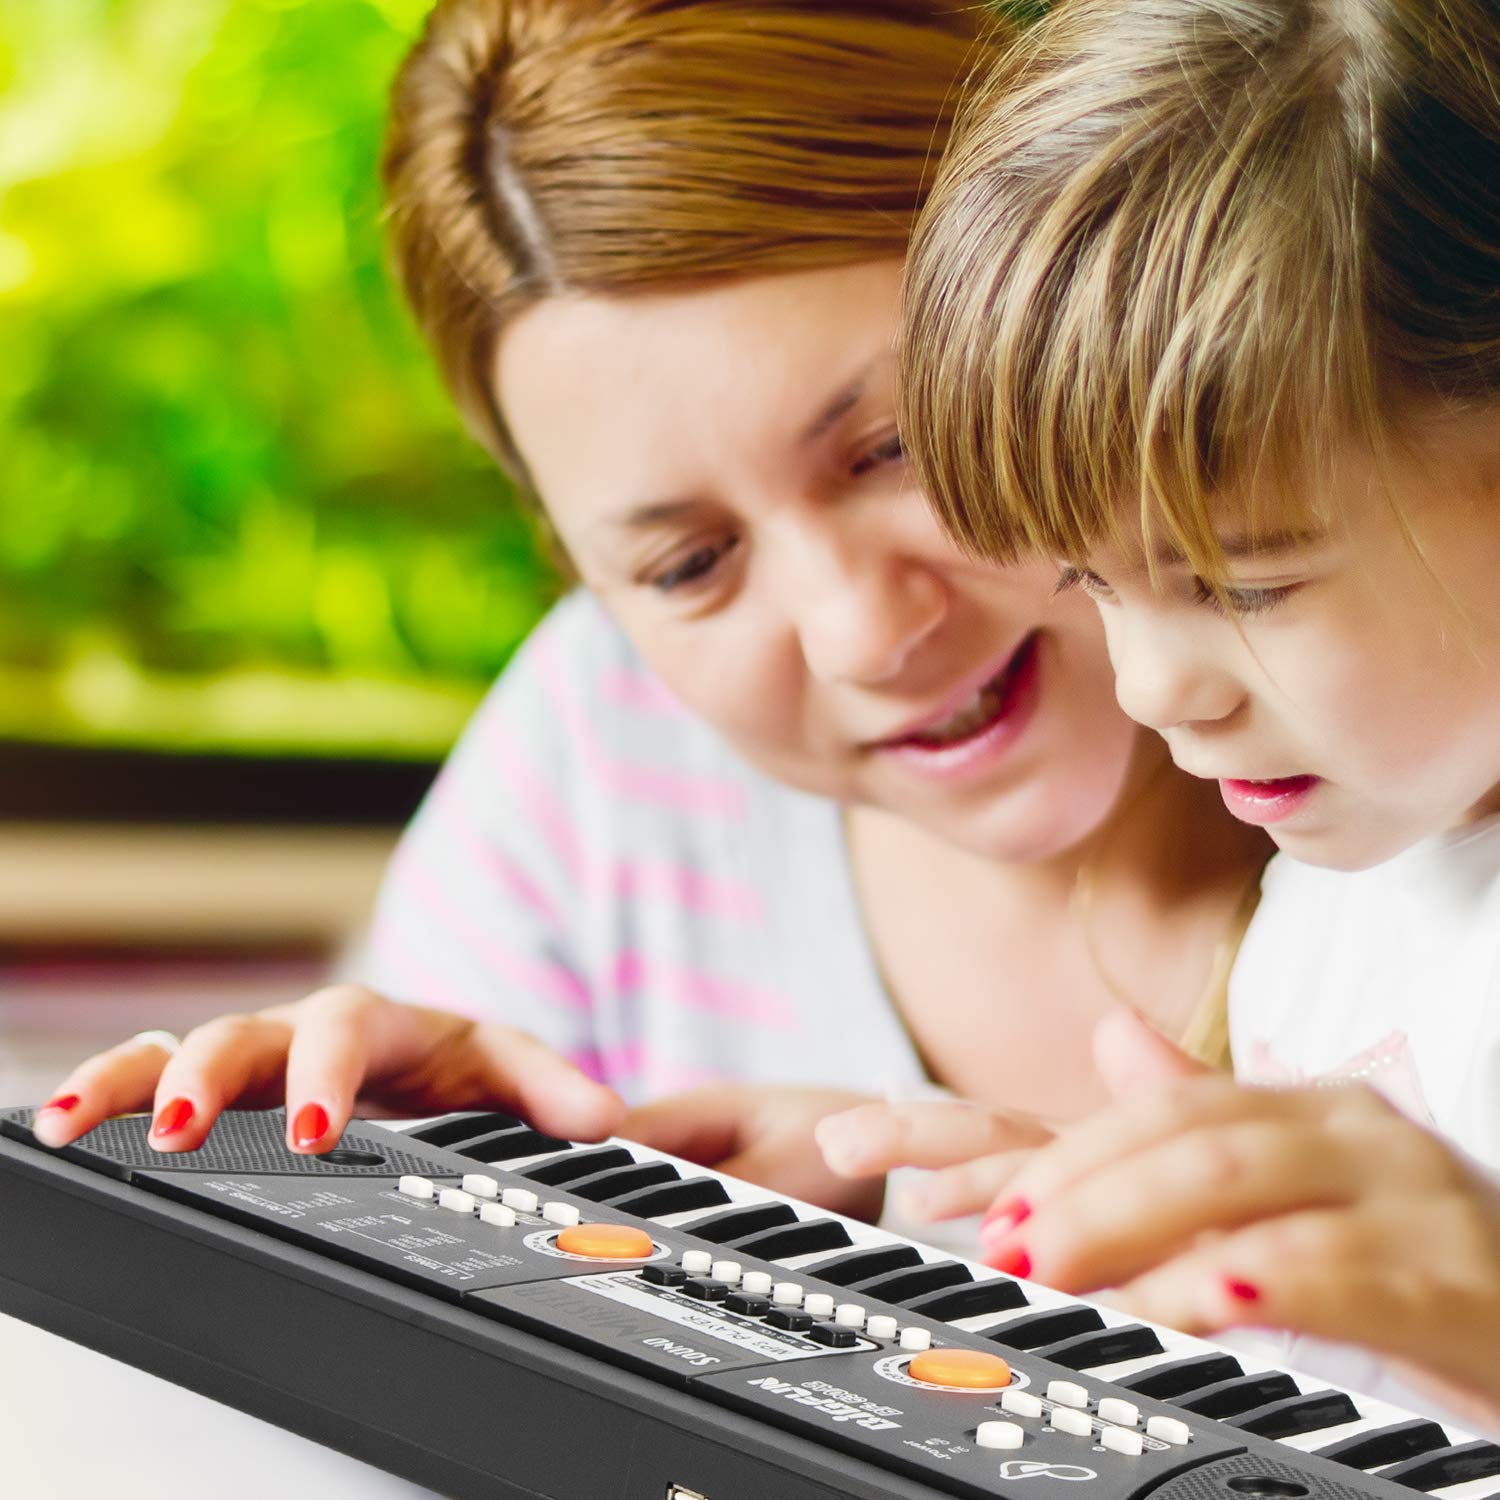 AIMEDYOU 49 Keys Piano Keyboard for Kids Multifunction Portable Piano Electronic Keyboard Music Instrument Birthday Xmas Day Gifts for Kids by AIMEDYOU (Image #7)